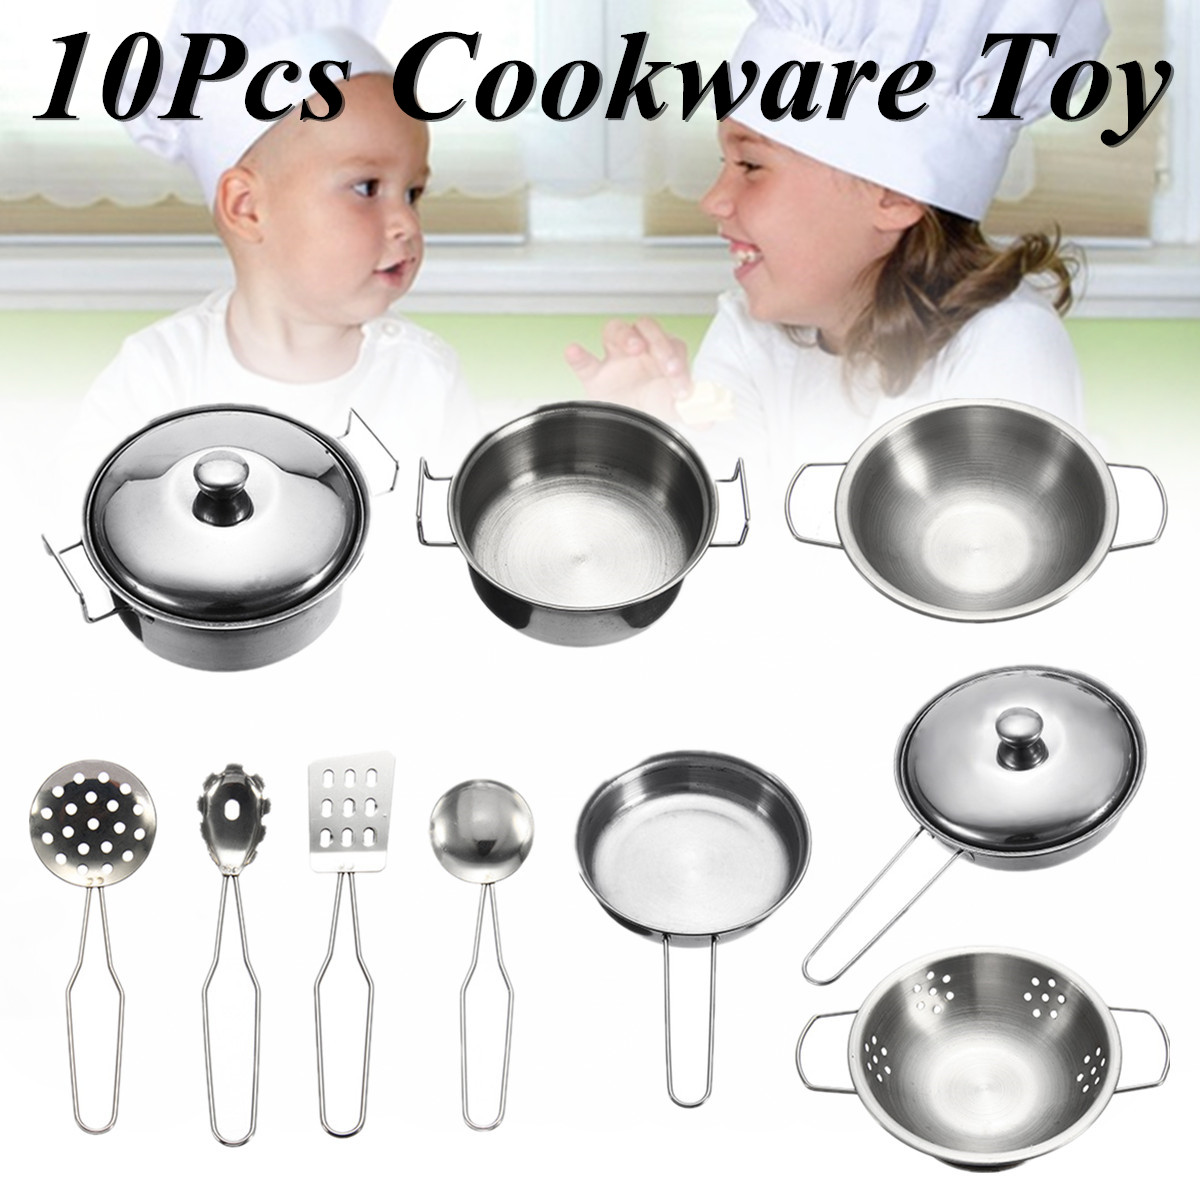 10pcs Stainless steel Cookware Kitchen Cooking Set Pots & Pans Toy For Children Play House Toys, Simulation... by